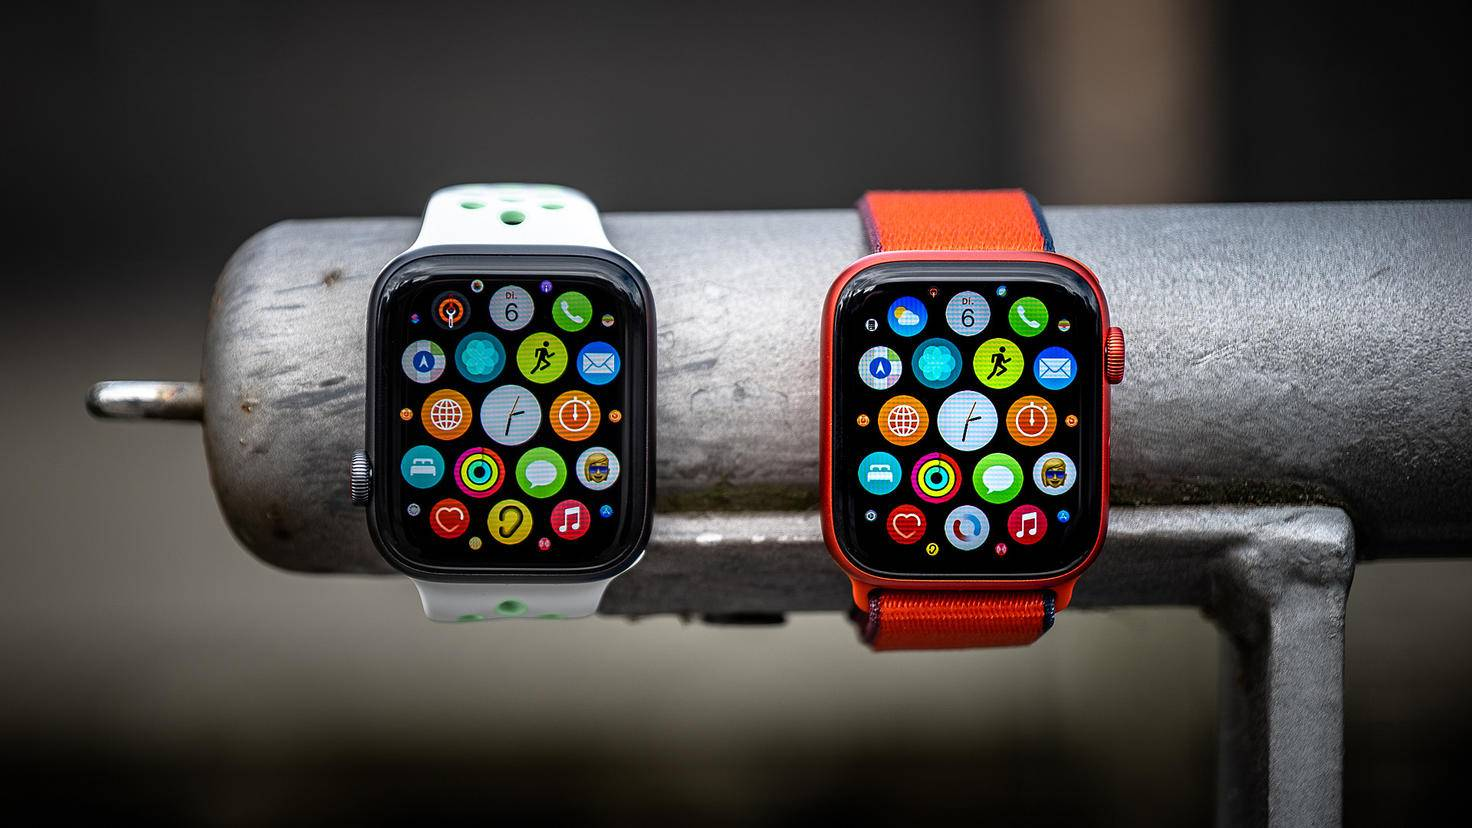 Apple Watch SE (left) and Apple Watch Series 6 (right)